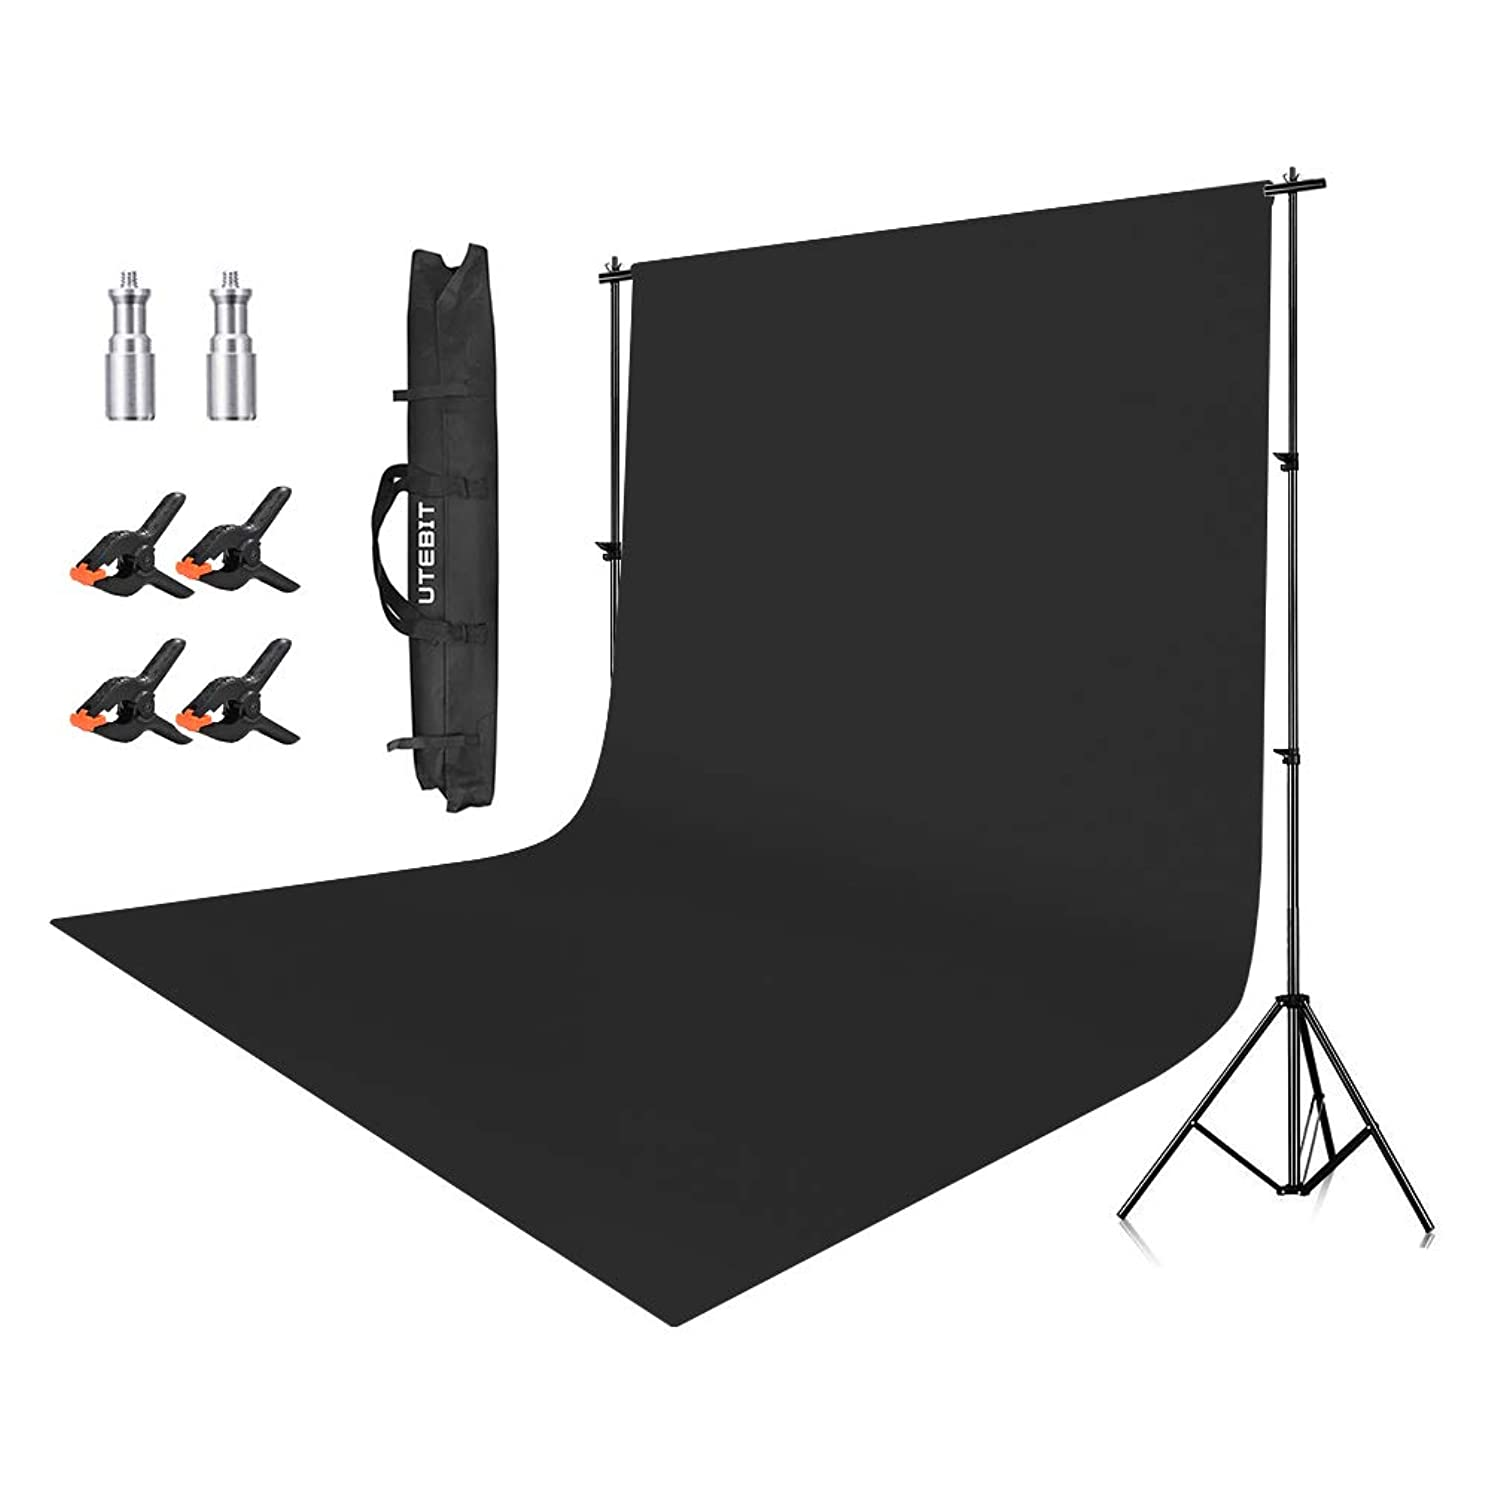 UTEBIT 6.5x9FT Background Stand Polyster 6x9FT Backdrop Kit Black Wrinkle Resistant Photo Booth 4 Pack Heavy Duty Clips with 2M10 Screw Adapter and Carrying Bag for Photo Video Studio Photography